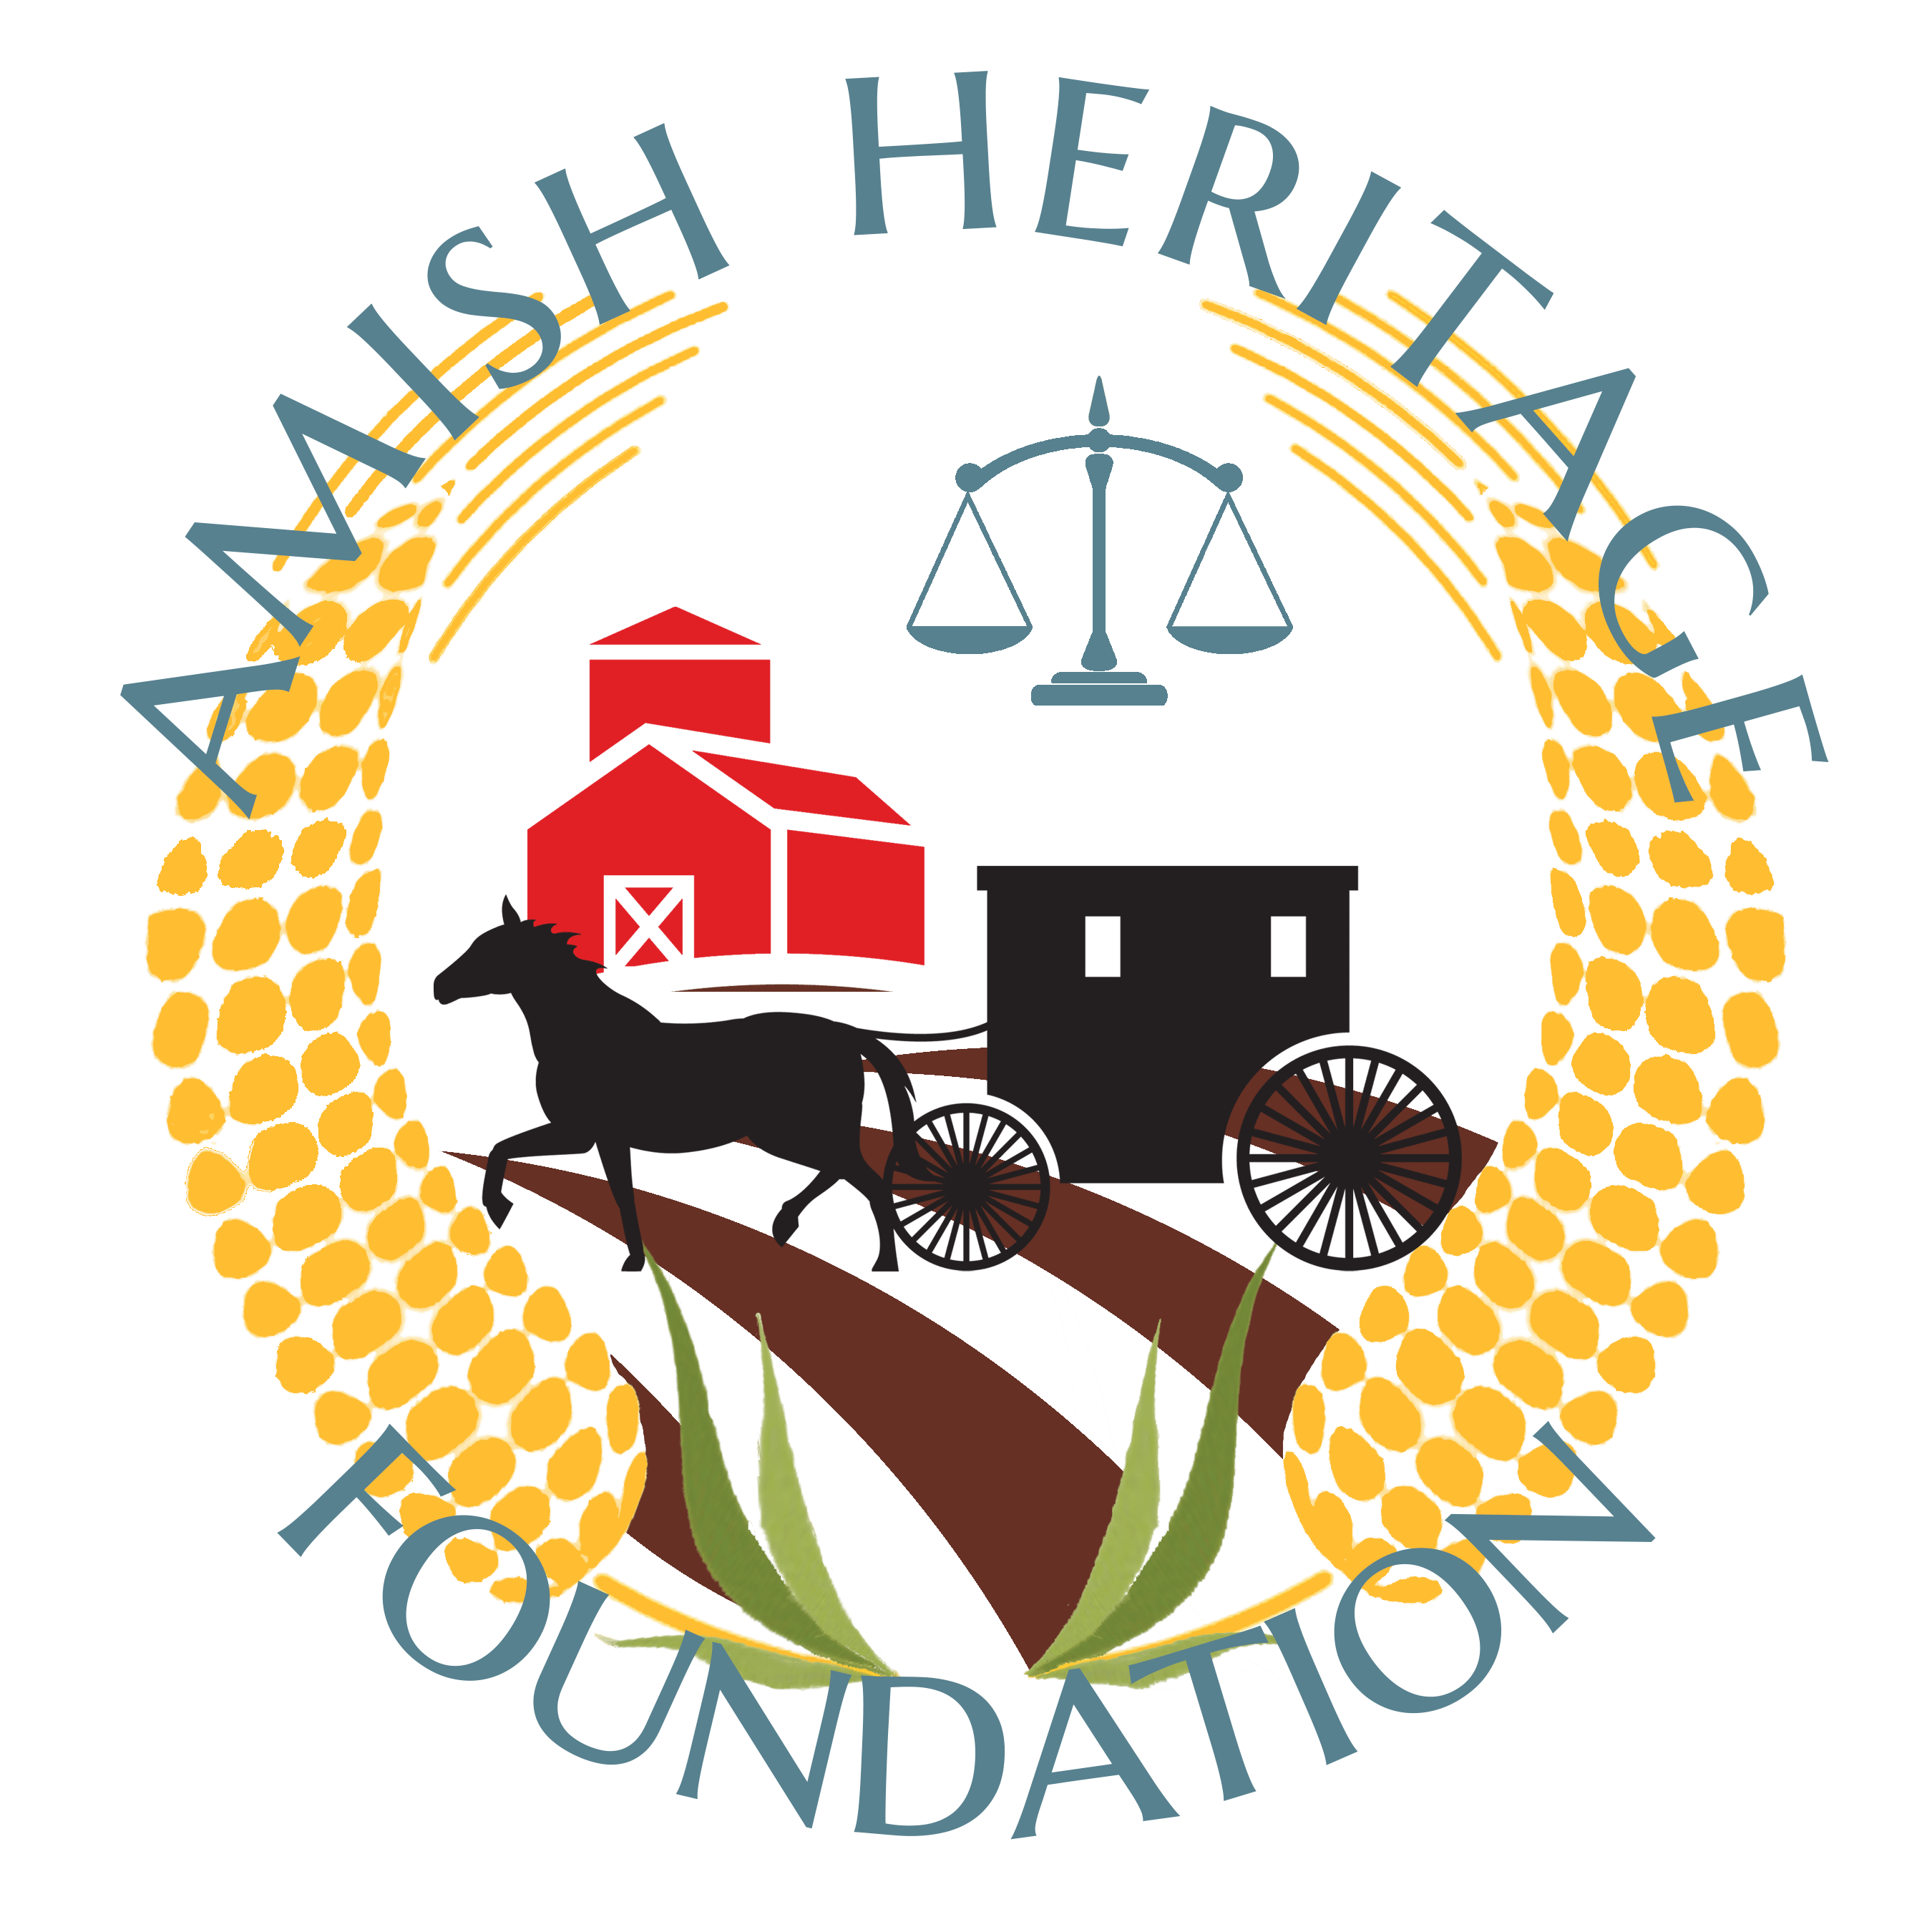 The Amish Heritage Foundation | Reclaiming our Amish story. Engaging our silenced issues.